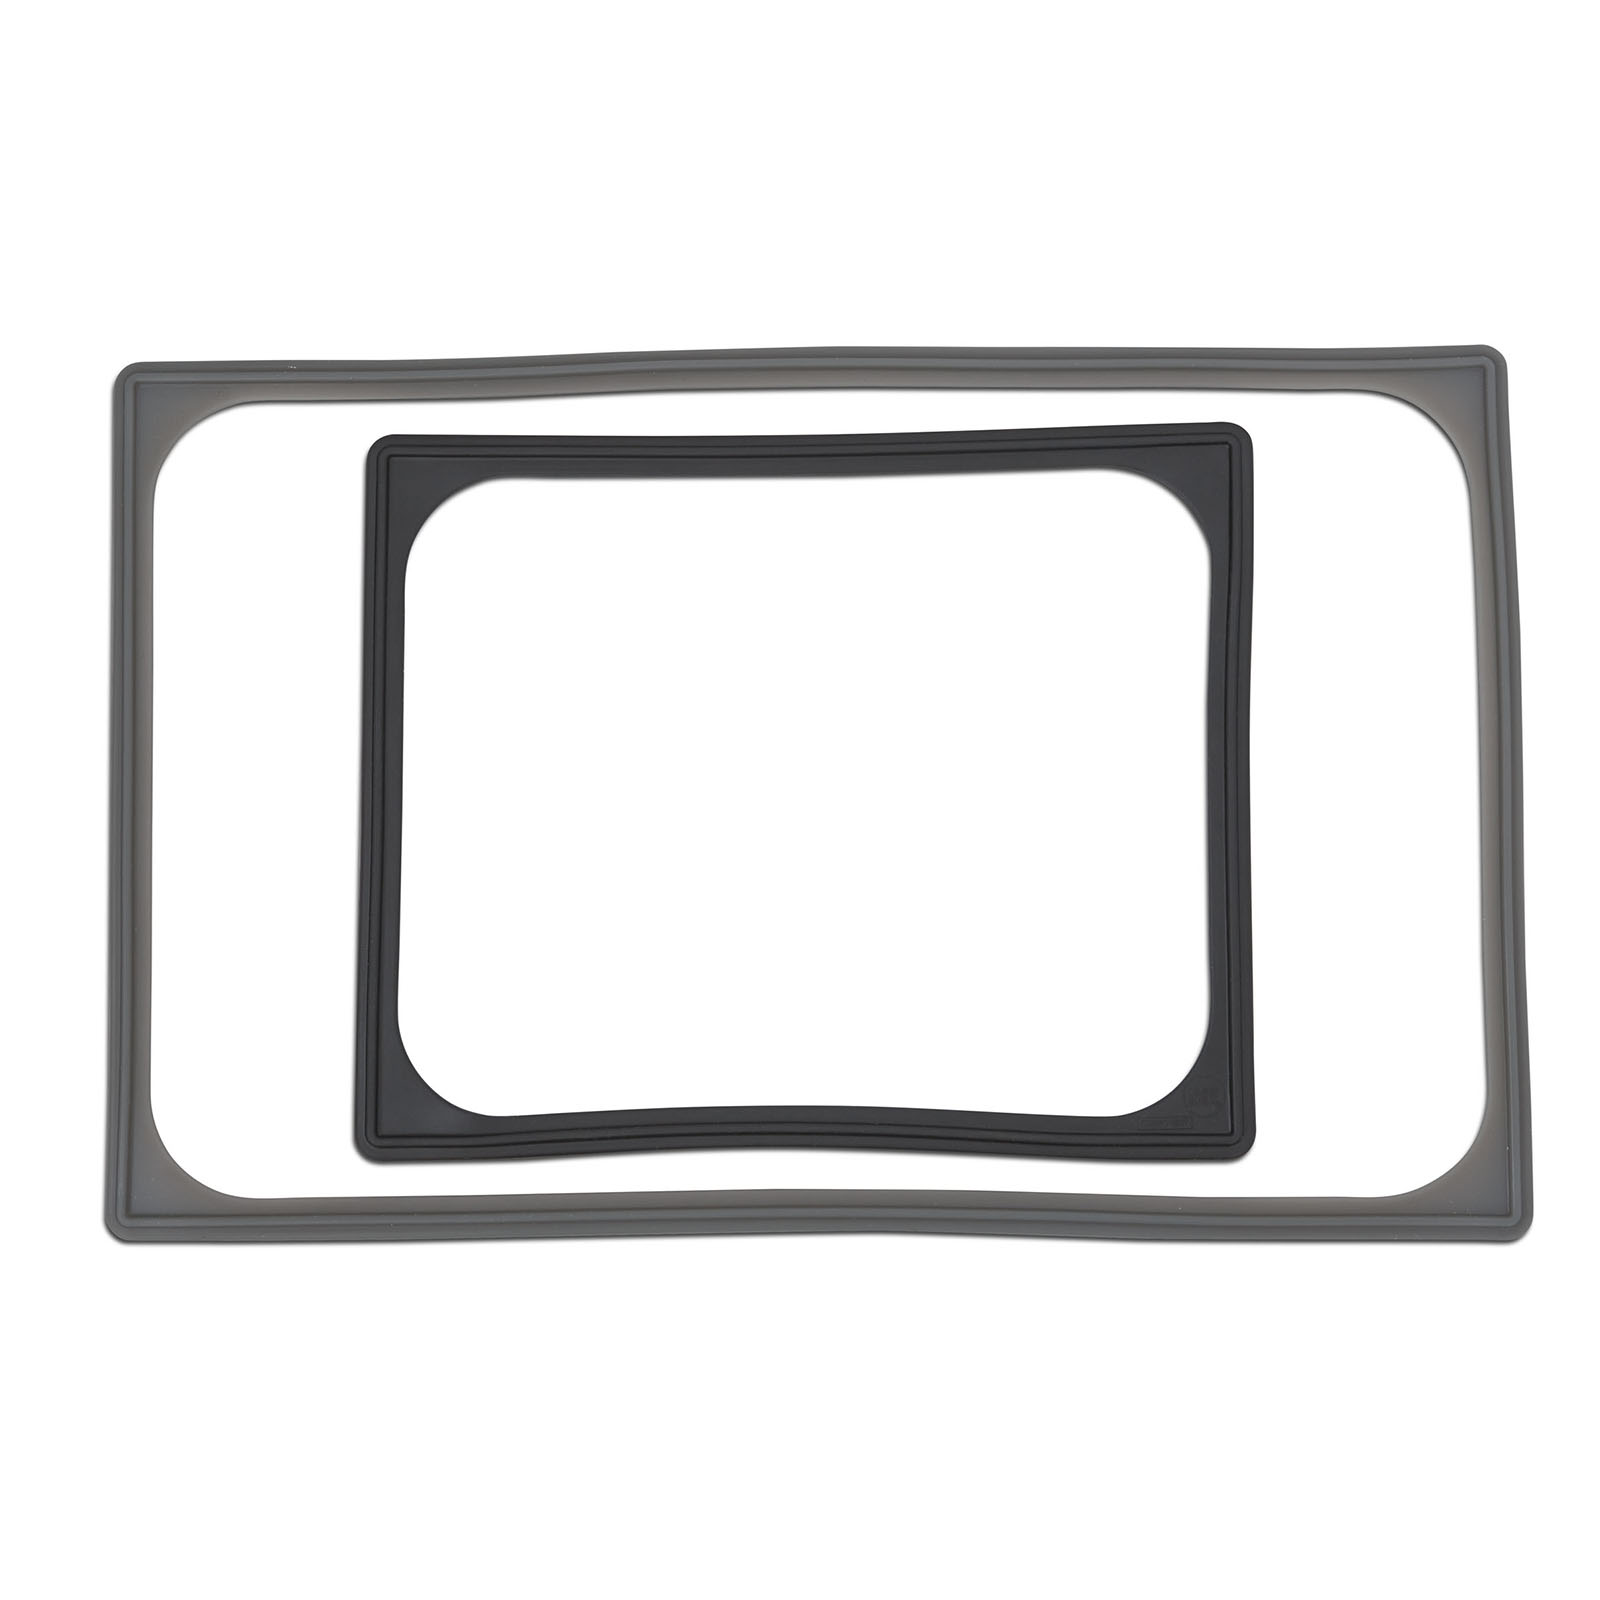 N-0001G Vollrath - High-Temp Silicone Pan Band for Full Size Steam Table - Gray